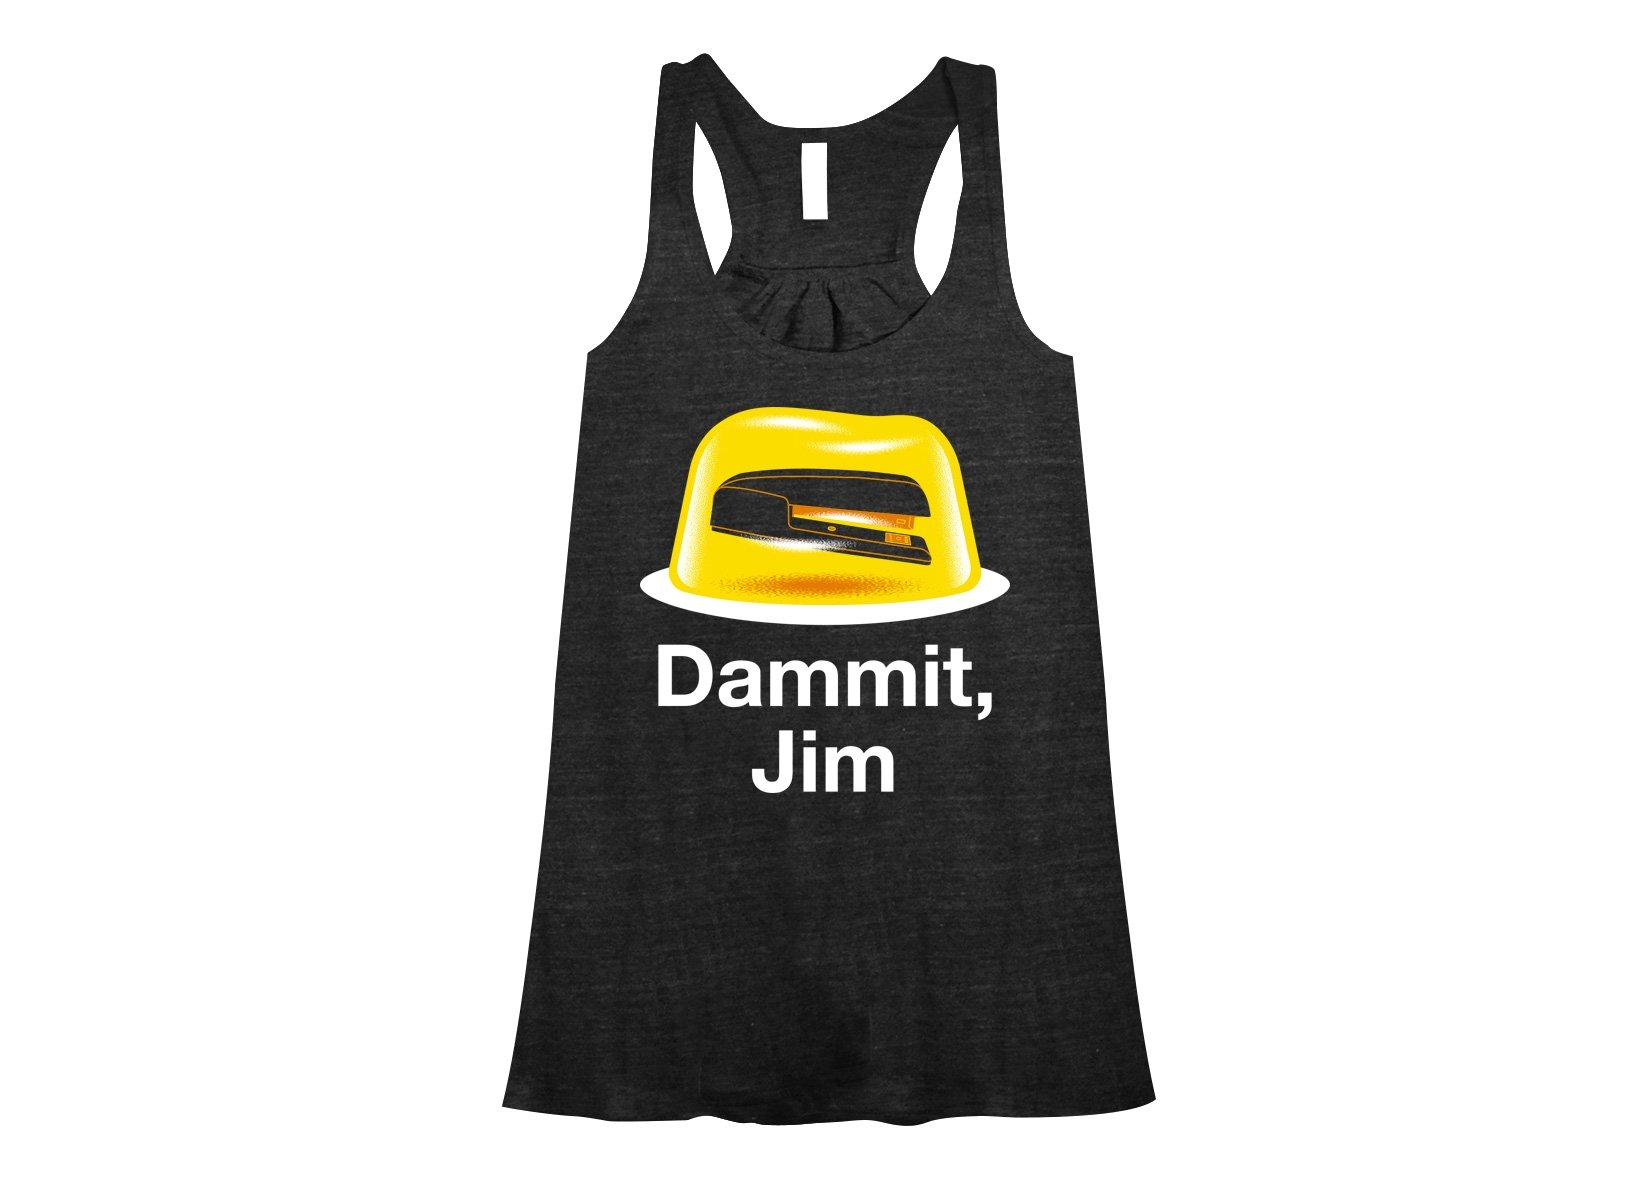 Dammit, Jim on Womens Tanks T-Shirt